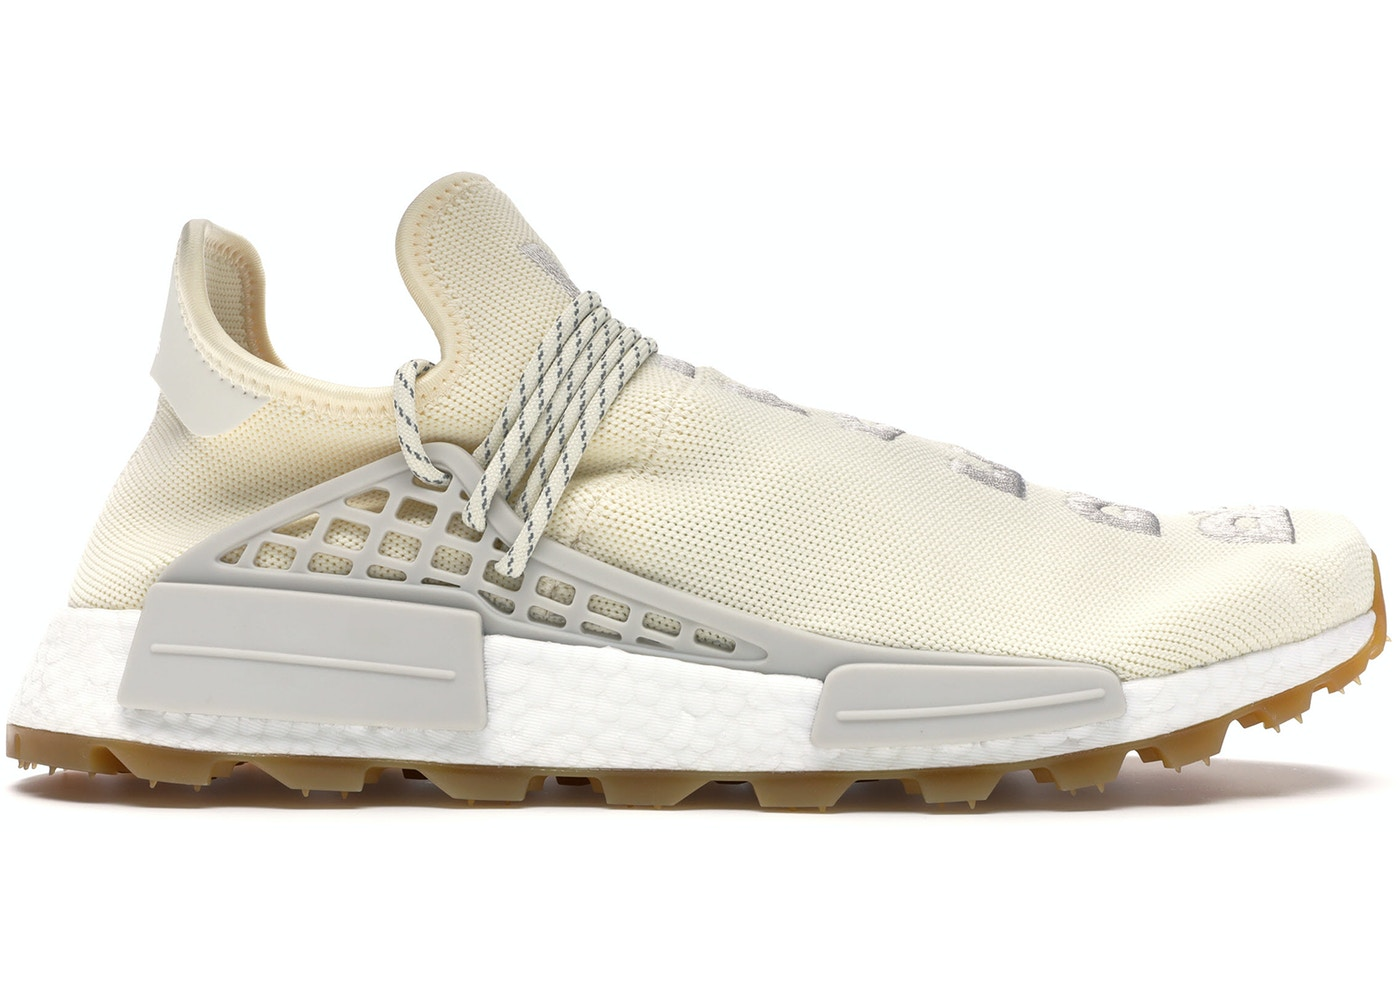 Adidas Nmd Hu Trail Pharrell Now Is Her Time Cream White Eg7737